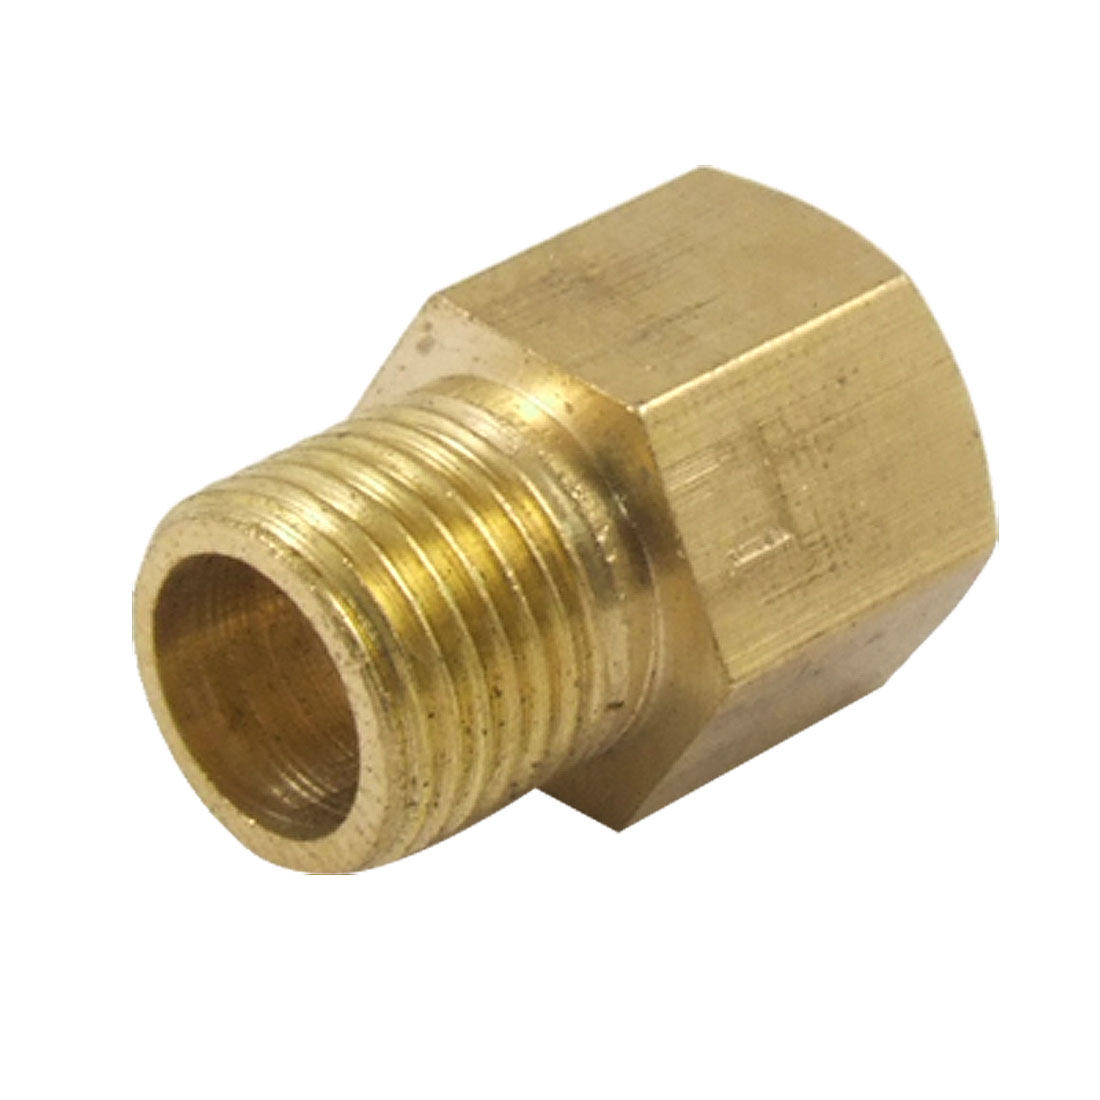 Pipe Fitting Connector 9 x 9mm Thread Hex Head Bushing Adapter